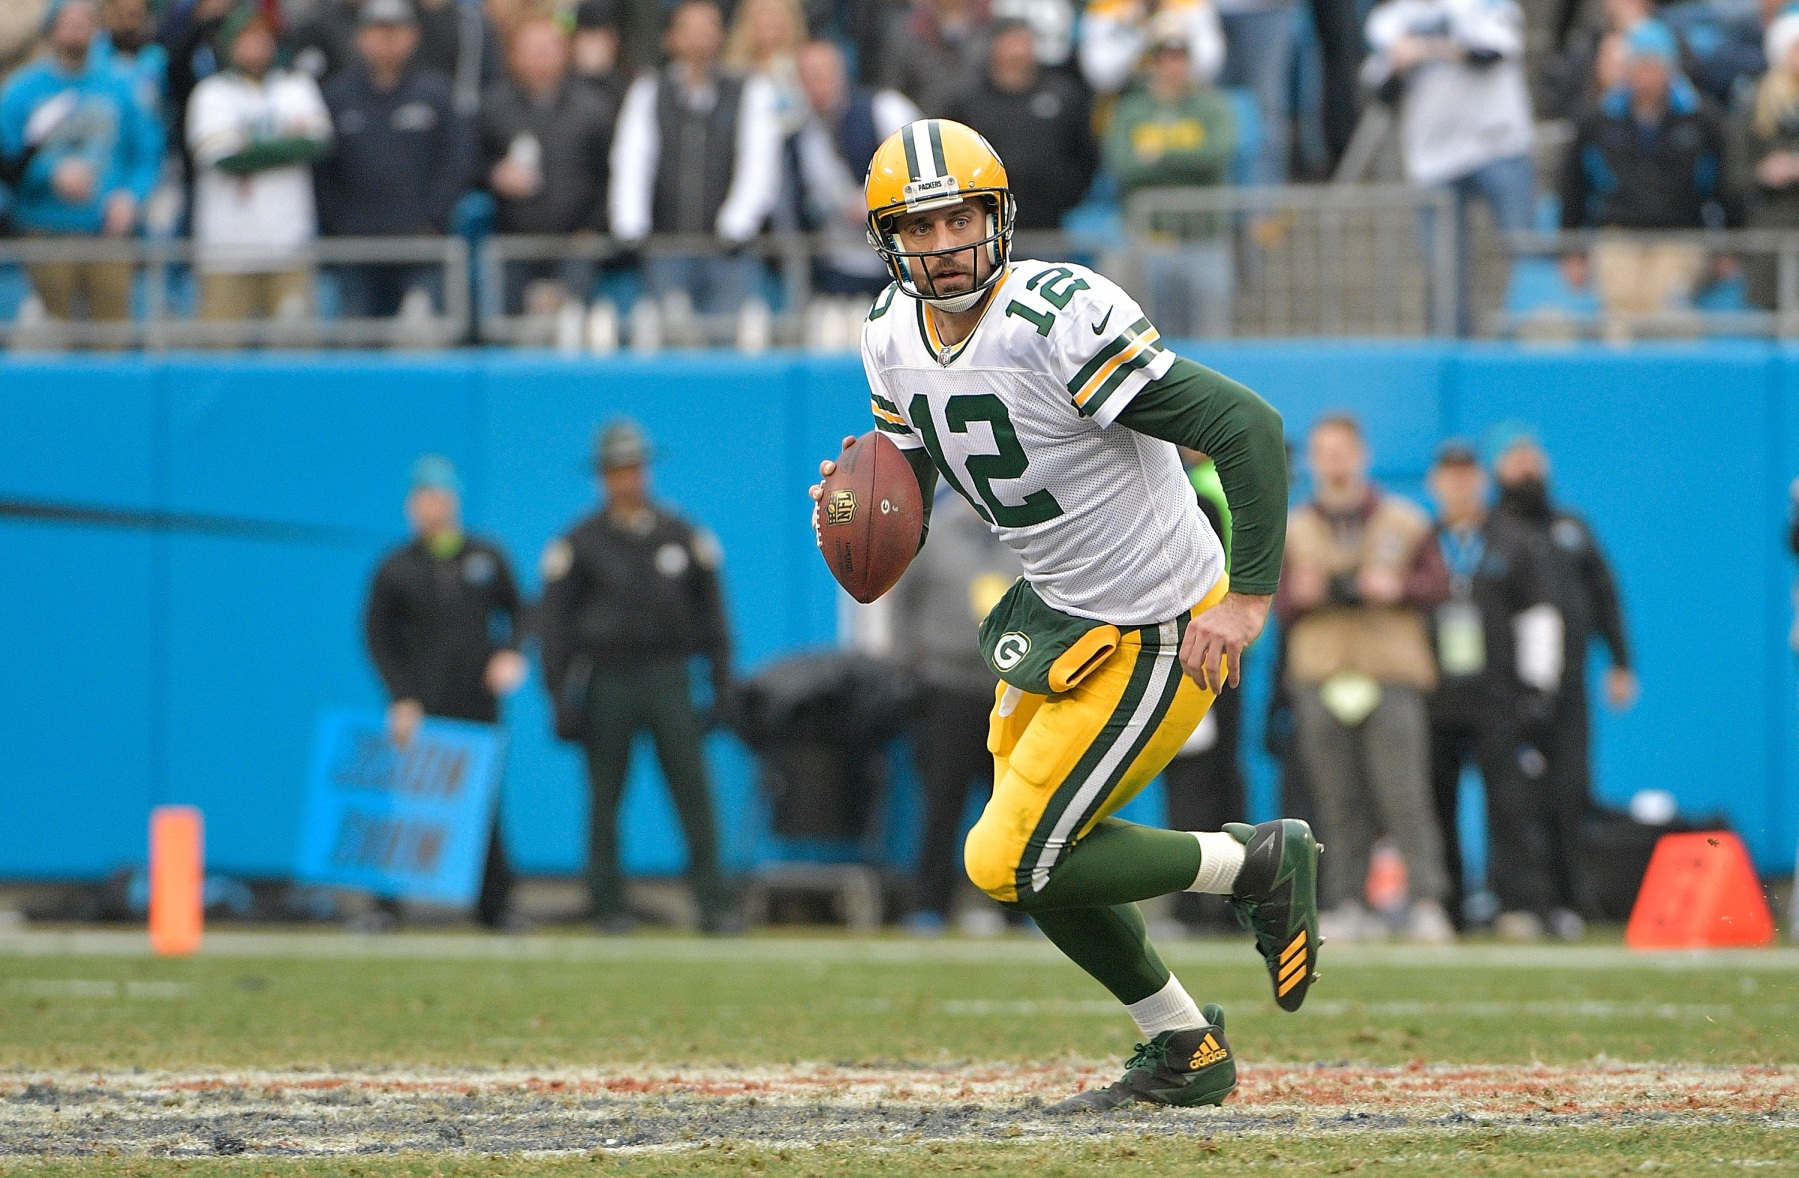 Aaron Rodgers #12 of the Green Bay Packers during their game against the Carolina Panthers at Bank of America Stadium on December 17, 2017 in Charlotte, North Carolina. The Panthers won 31-24.  (Photo by Grant Halverson/Getty Images)